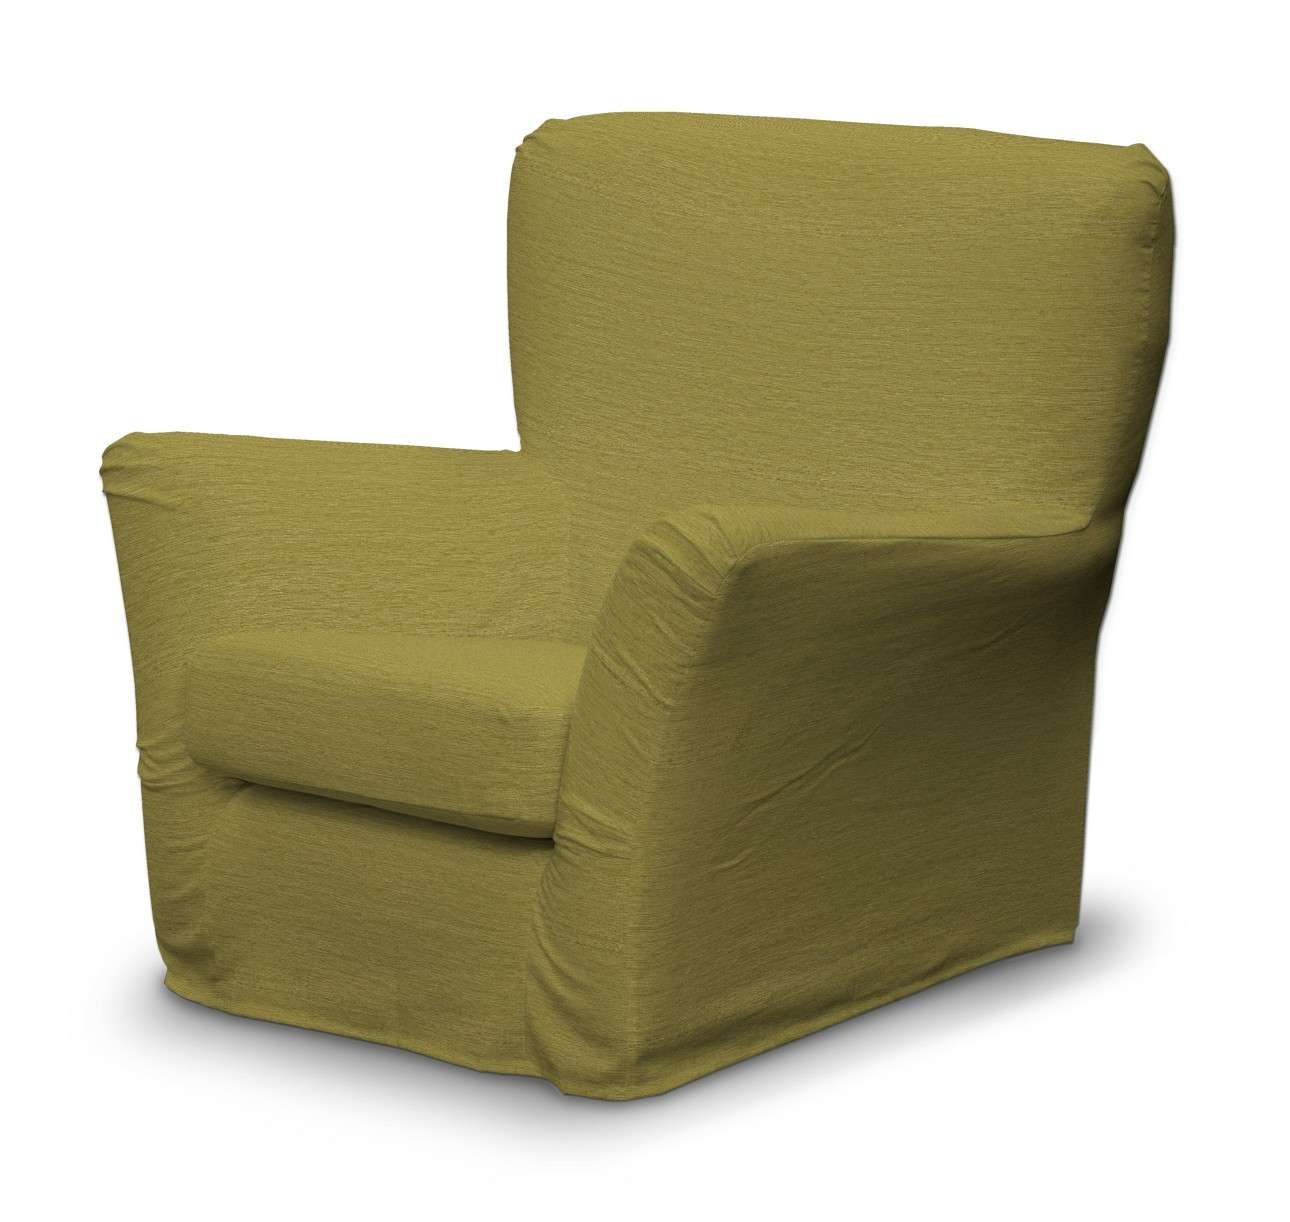 Tomelilla armchair  Tomelilla armchair in collection Chenille, fabric: 160-47